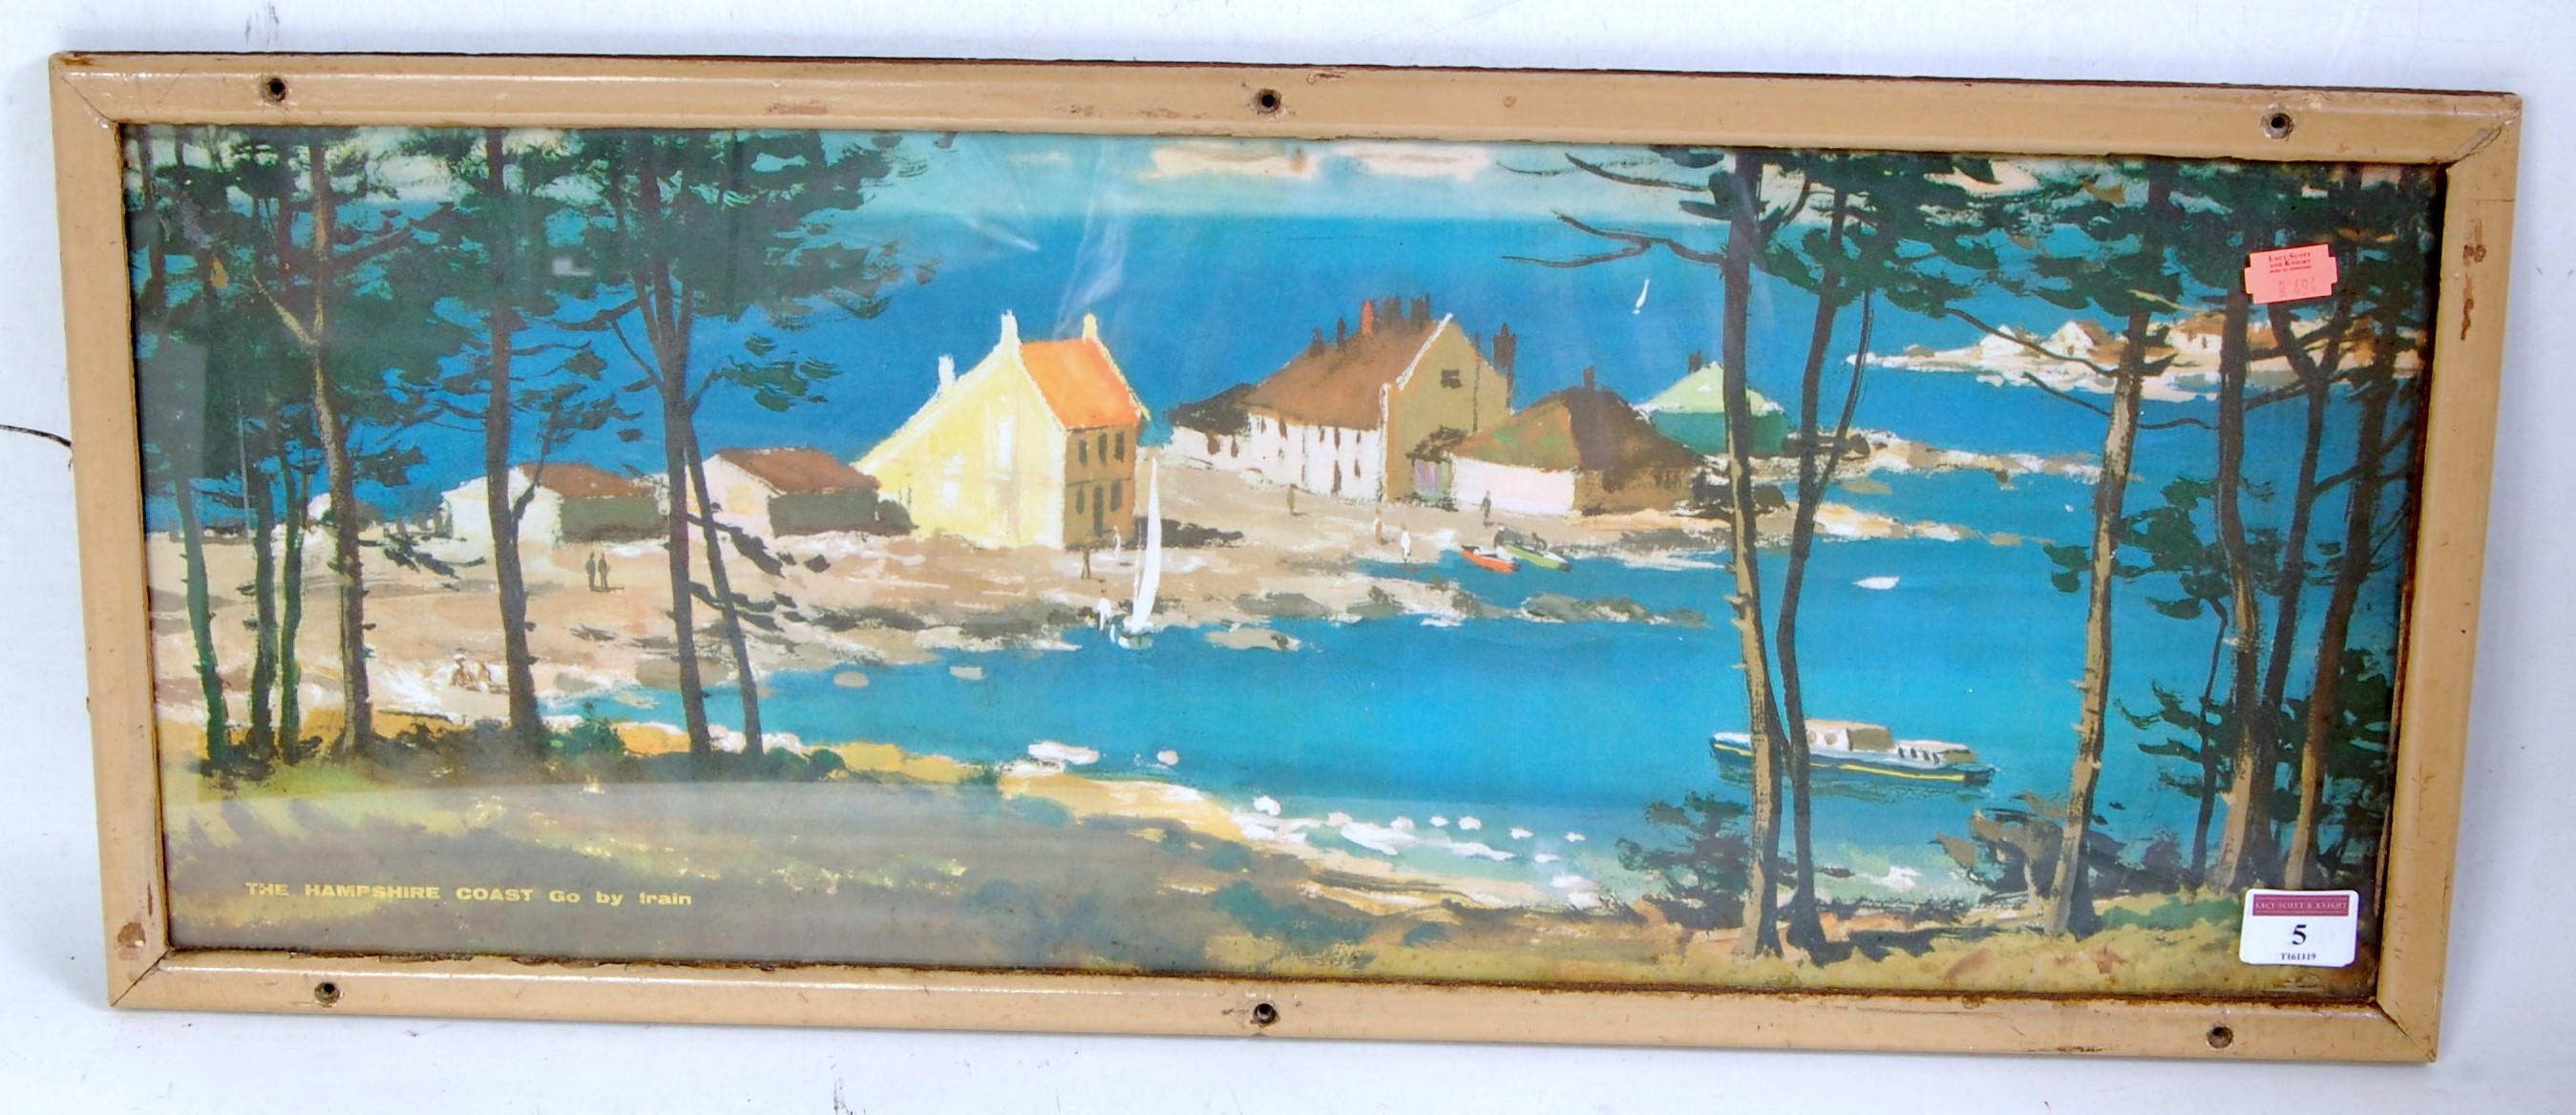 Lot 5 - An original framed Langhammer carriage print, depicting the Hampshire coast (Go By Train) sold